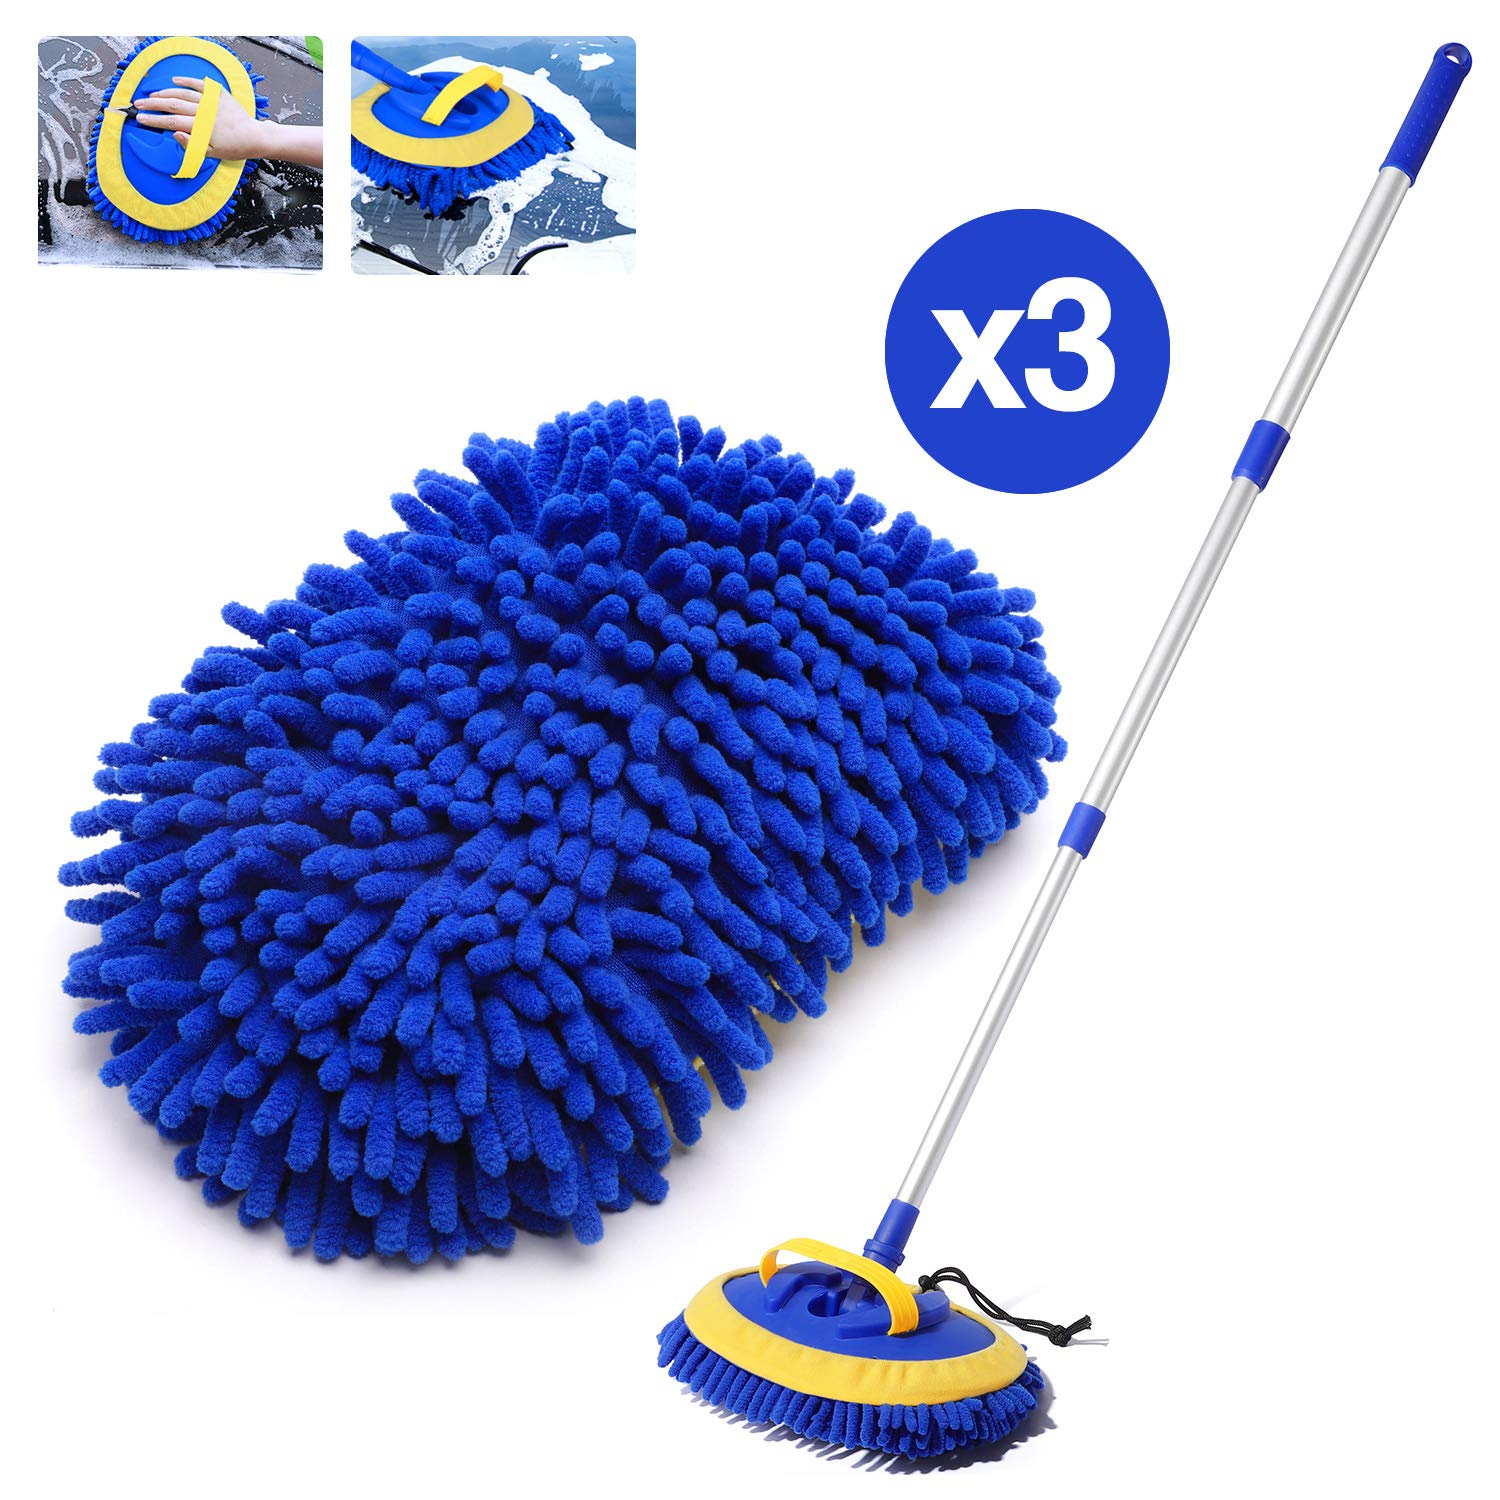 HOUSE DAY 2-in-1 Car Wash Mop Mitt Long Handle Chenille Microfiber Car Wash Dust Brush Extension Pole 180 Degree Rotation Scratch Free Cleaning Tool Dust Collector Supplies,3 Pcs Mop Heads (Blue)